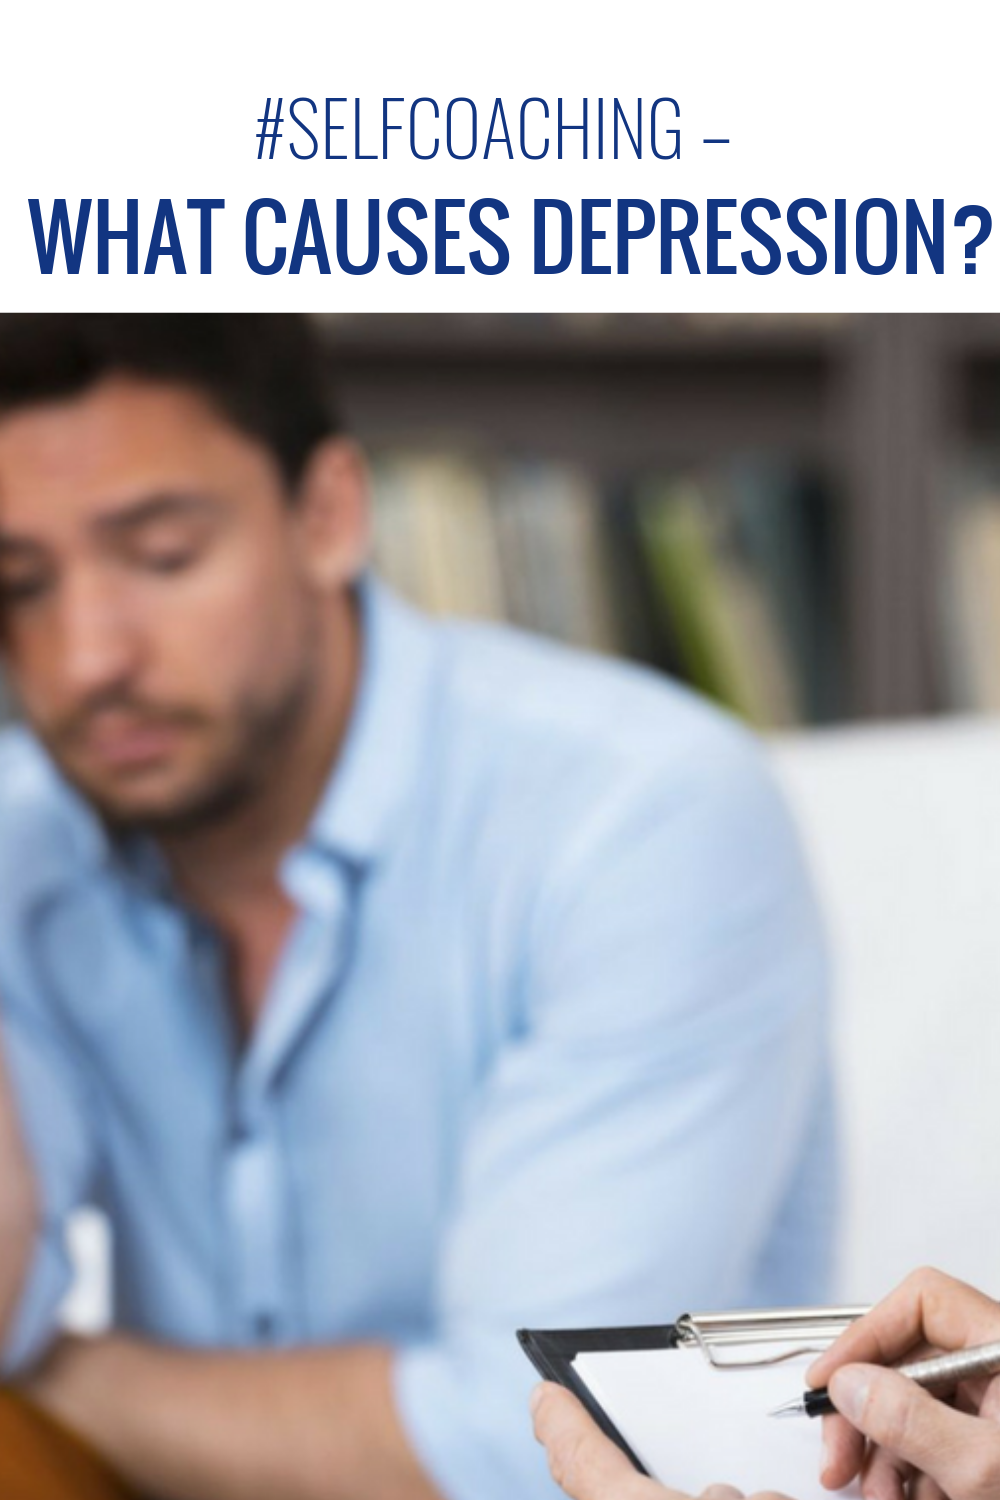 #SelfCoaching – What causes depression?